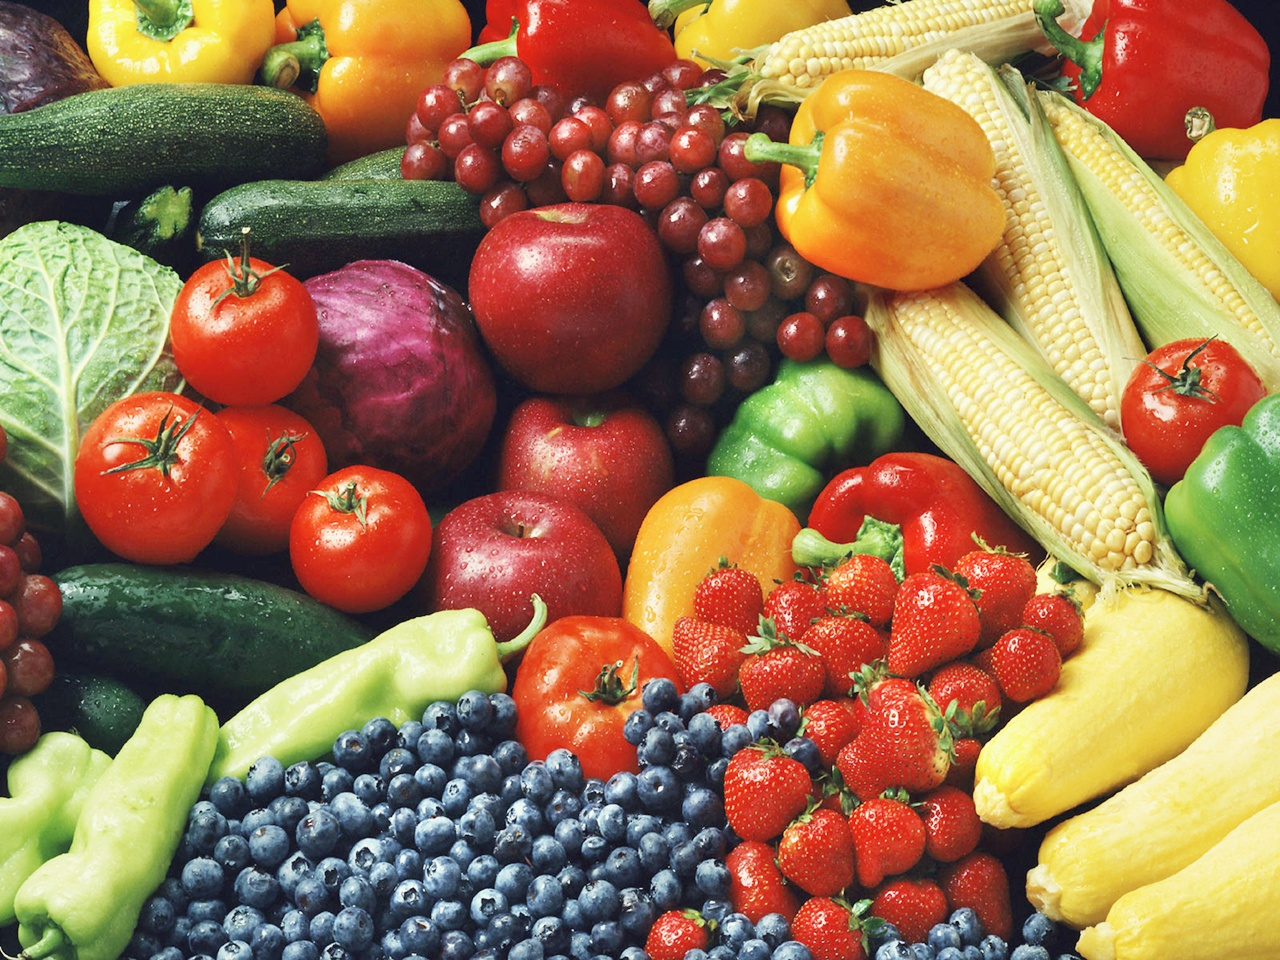 Vegetable And Fruits Wallpaper Fruit And Vegetables Wallpaper 1280x960